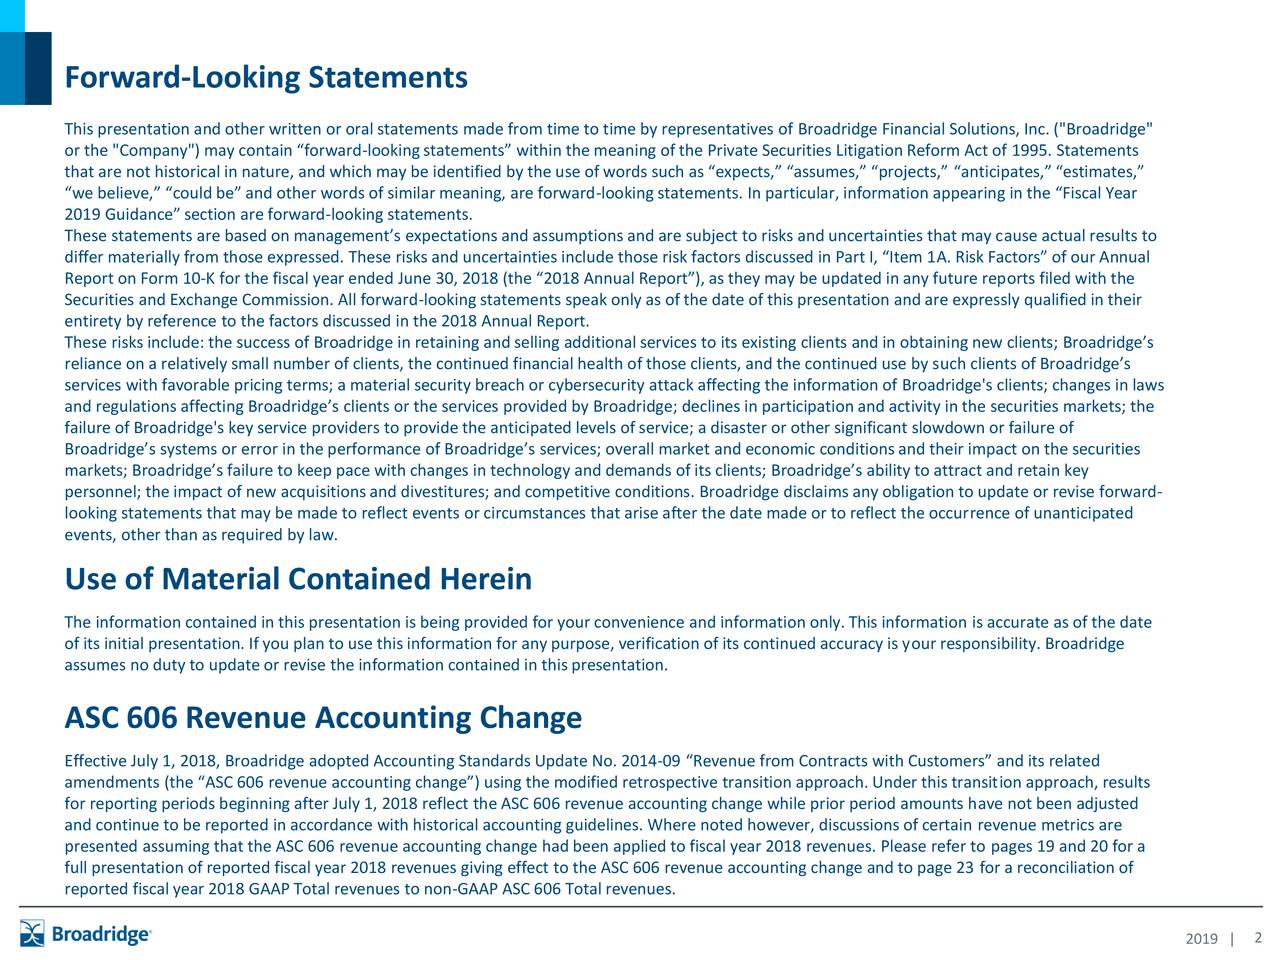 "This presentation and other written or oral statements made from time to time by representatives of Broadridge Financial Solutions, Inc. (""Broadridge"" or the ""Company"") may contain ""forward-looking statements"" within the meaning of the Private Securities Litigation Reform Act of 1995. Statements that are not historical in nature, and which may be identified by the use of words such as ""expects,"" ""assumes,"" ""projects,"" ""anticipates,"" ""estimates,"" ""we believe,"" ""could be"" and other words of similar meaning, are forward-looking statements. In particular, information appearing in the ""Fiscal Year 2019 Guidance"" section are forward-looking statements. These statements are based on management's expectations and assumptions and are subject to risks and uncertainties that may cause actual results to differ materially from those expressed. These risks and uncertainties include those risk factors discussed in Part I, ""Item 1A. Risk Factors"" of our Annual Report on Form 10-K for the fiscal year ended June 30, 2018 (the ""2018 Annual Report""), as they may be updated in any future reports filed with the Securities and Exchange Commission. All forward-looking statements speak only as of the date of this presentation and are expressly qualified in their entirety by reference to the factors discussed in the 2018 Annual Report. These risks include: the success of Broadridge in retaining and selling additional services to its existing clients and in obtaining new clients; Broadridge's reliance on a relatively small number of clients, the continued financial health of those clients, and the continued use by such clients of Broadridge's services with favorable pricing terms; a material security breach or cybersecurity attack affecting the information of Broadridge's clients; changes in laws and regulations affecting Broadridge's clients or the services provided by Broadridge; declines in participation and activity in the securities markets; the failure of Broadridge's key service providers to provide the anticipated levels of service; a disaster or other significant slowdown or failure of Broadridge's systems or error in the performance of Broadridge's services; overall market and economic conditions and their impact on the securities markets; Broadridge's failure to keep pace with changes in technology and demands of its clients; Broadridge's ability to attract and retain key personnel; the impact of new acquisitions and divestitures; and competitive conditions. Broadridge disclaims any obligation to update or revise forward- looking statements that may be made to reflect events or circumstances that arise after the date made or to reflect the occurrence of unanticipated events, other than as required by law. Use of Material Contained Herein The information contained in this presentation is being provided for your convenience and information only. This information is accurate as of the date of its initial presentation. If you plan to use this information for any purpose, verification of its continued accuracy is your responsibility. Broadridge assumes no duty to update or revise the information contained in this presentation. ASC 606 Revenue Accounting Change Effective July 1, 2018, Broadridge adopted Accounting Standards Update No. 2014-09 ""Revenue from Contracts with Customers"" and its related amendments (the ""ASC 606 revenue accounting change"") using the modified retrospective transition approach. Under this transition approach, results for reporting periods beginning after July 1, 2018 reflect the ASC 606 revenue accounting change while prior period amounts have not been adjusted and continue to be reported in accordance with historical accounting guidelines. Where noted however, discussions of certain revenue metrics are presented assuming that the ASC 606 revenue accounting change had been applied to fiscal year 2018 revenues. Please refer to pages 19 and 20 for a full presentation of reported fiscal year 2018 revenues giving effect to the ASC 606 revenue accounting change and to page 23 for a reconciliation of reported fiscal year 2018 GAAP Total revenues to non-GAAP ASC 606 Total revenues. 2019 